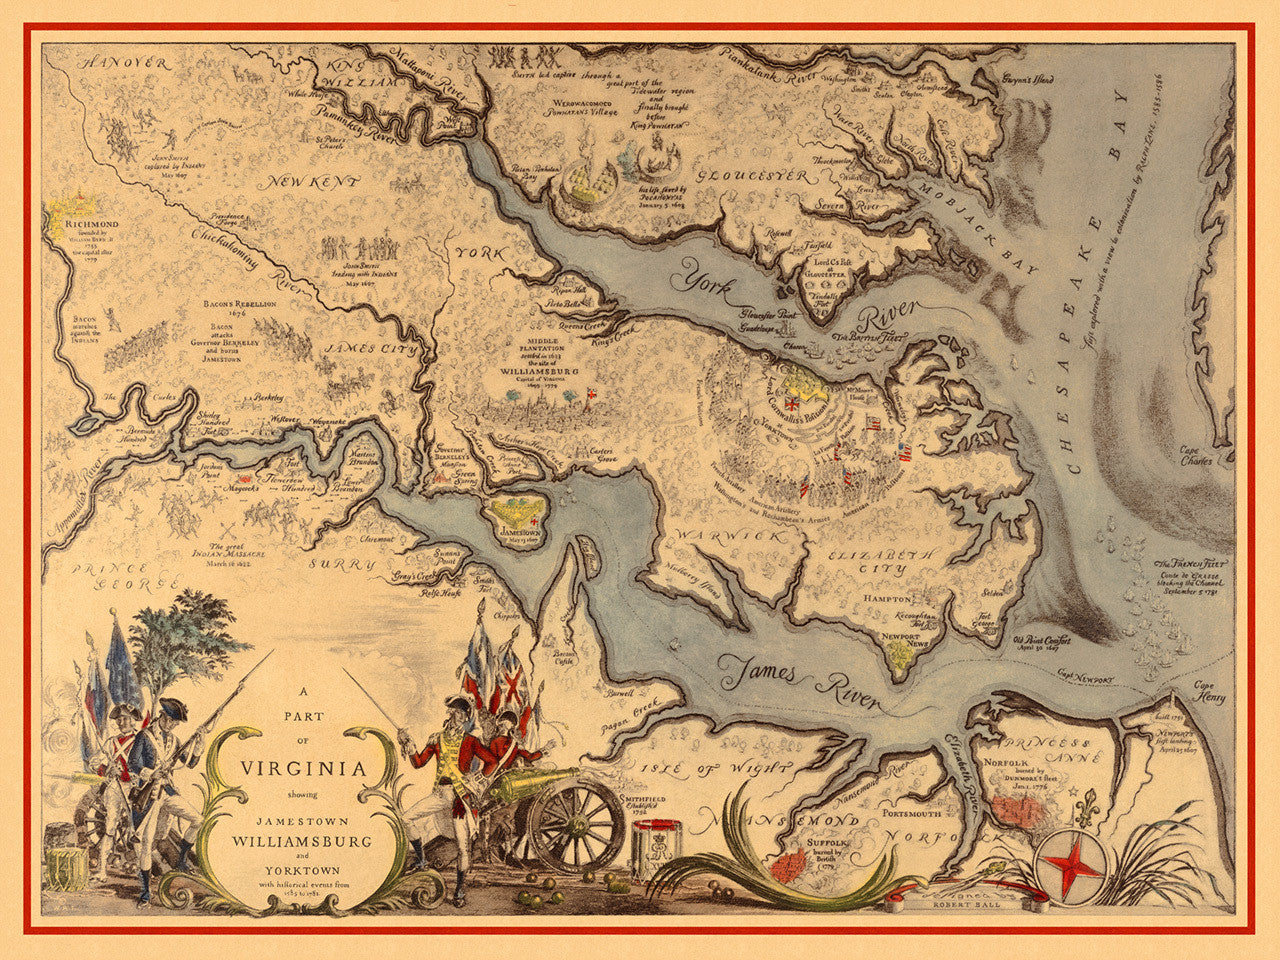 Map of Virginia 1585–1781 with Williamsburg, Jamestown, Yorktown